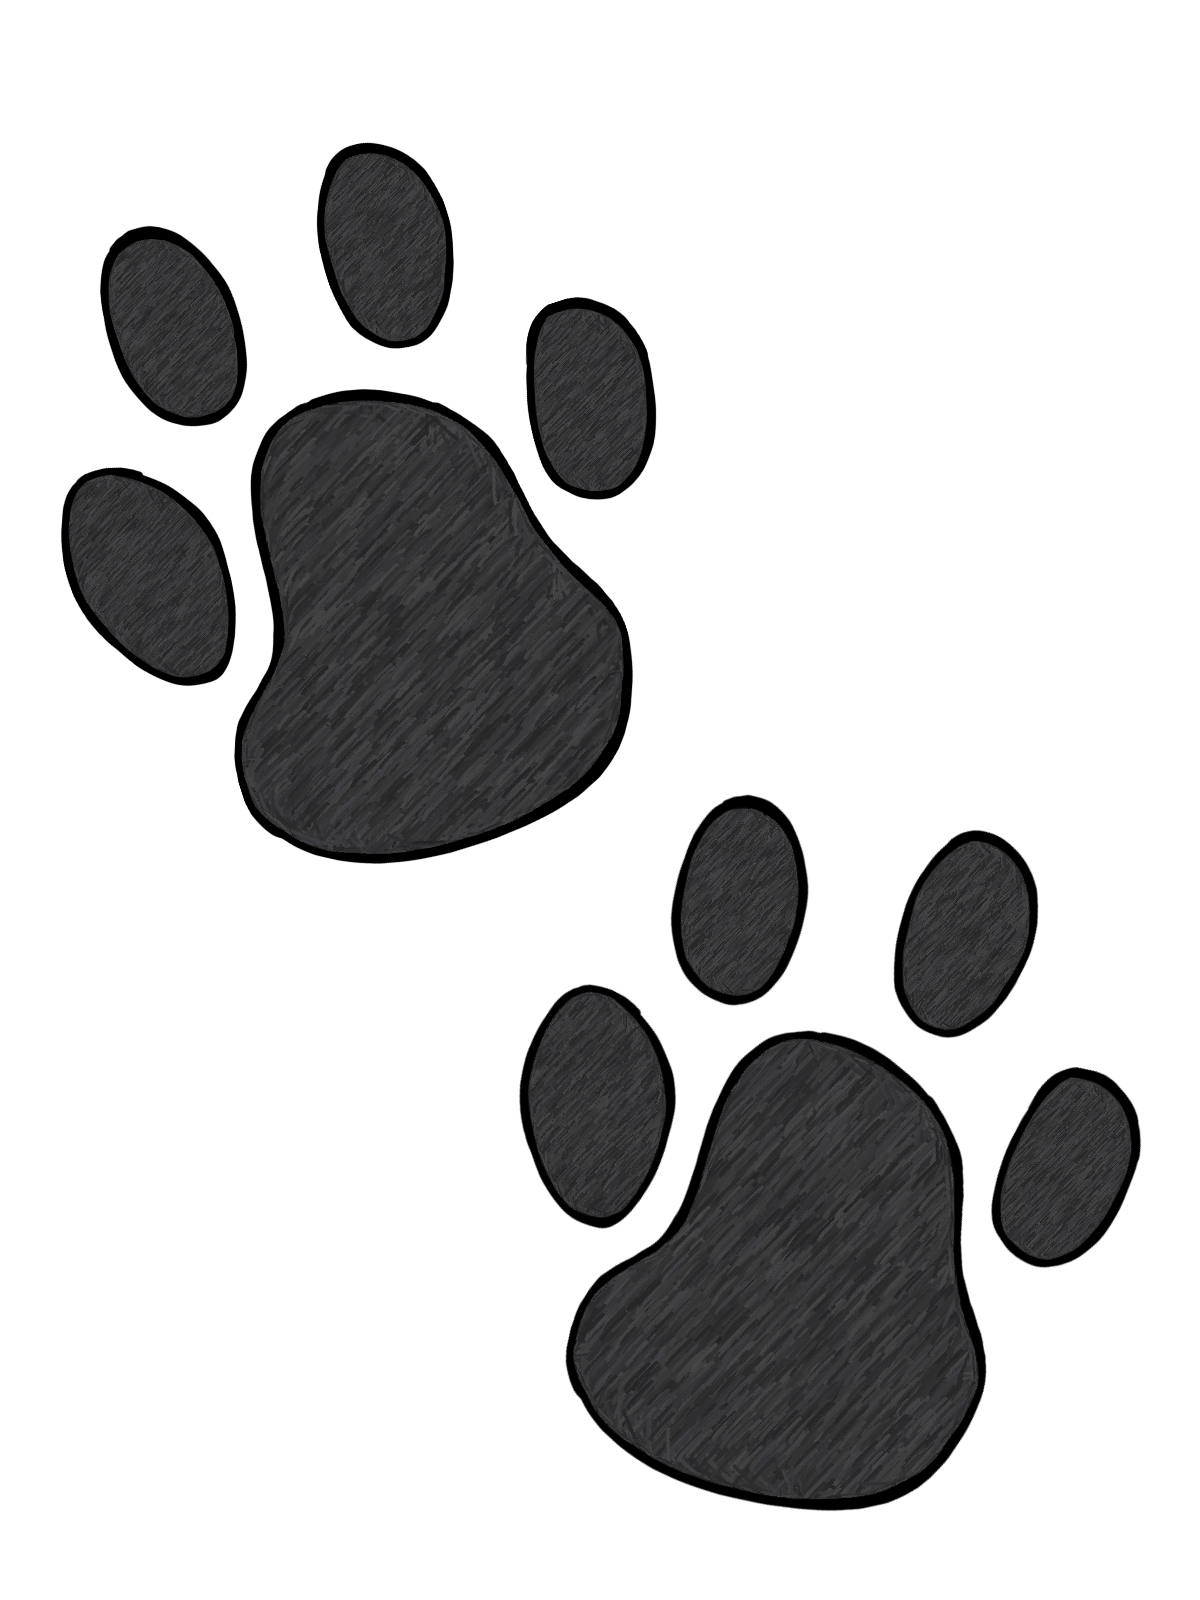 Wildcat clipart paw print. Cliparts zone wildcats on